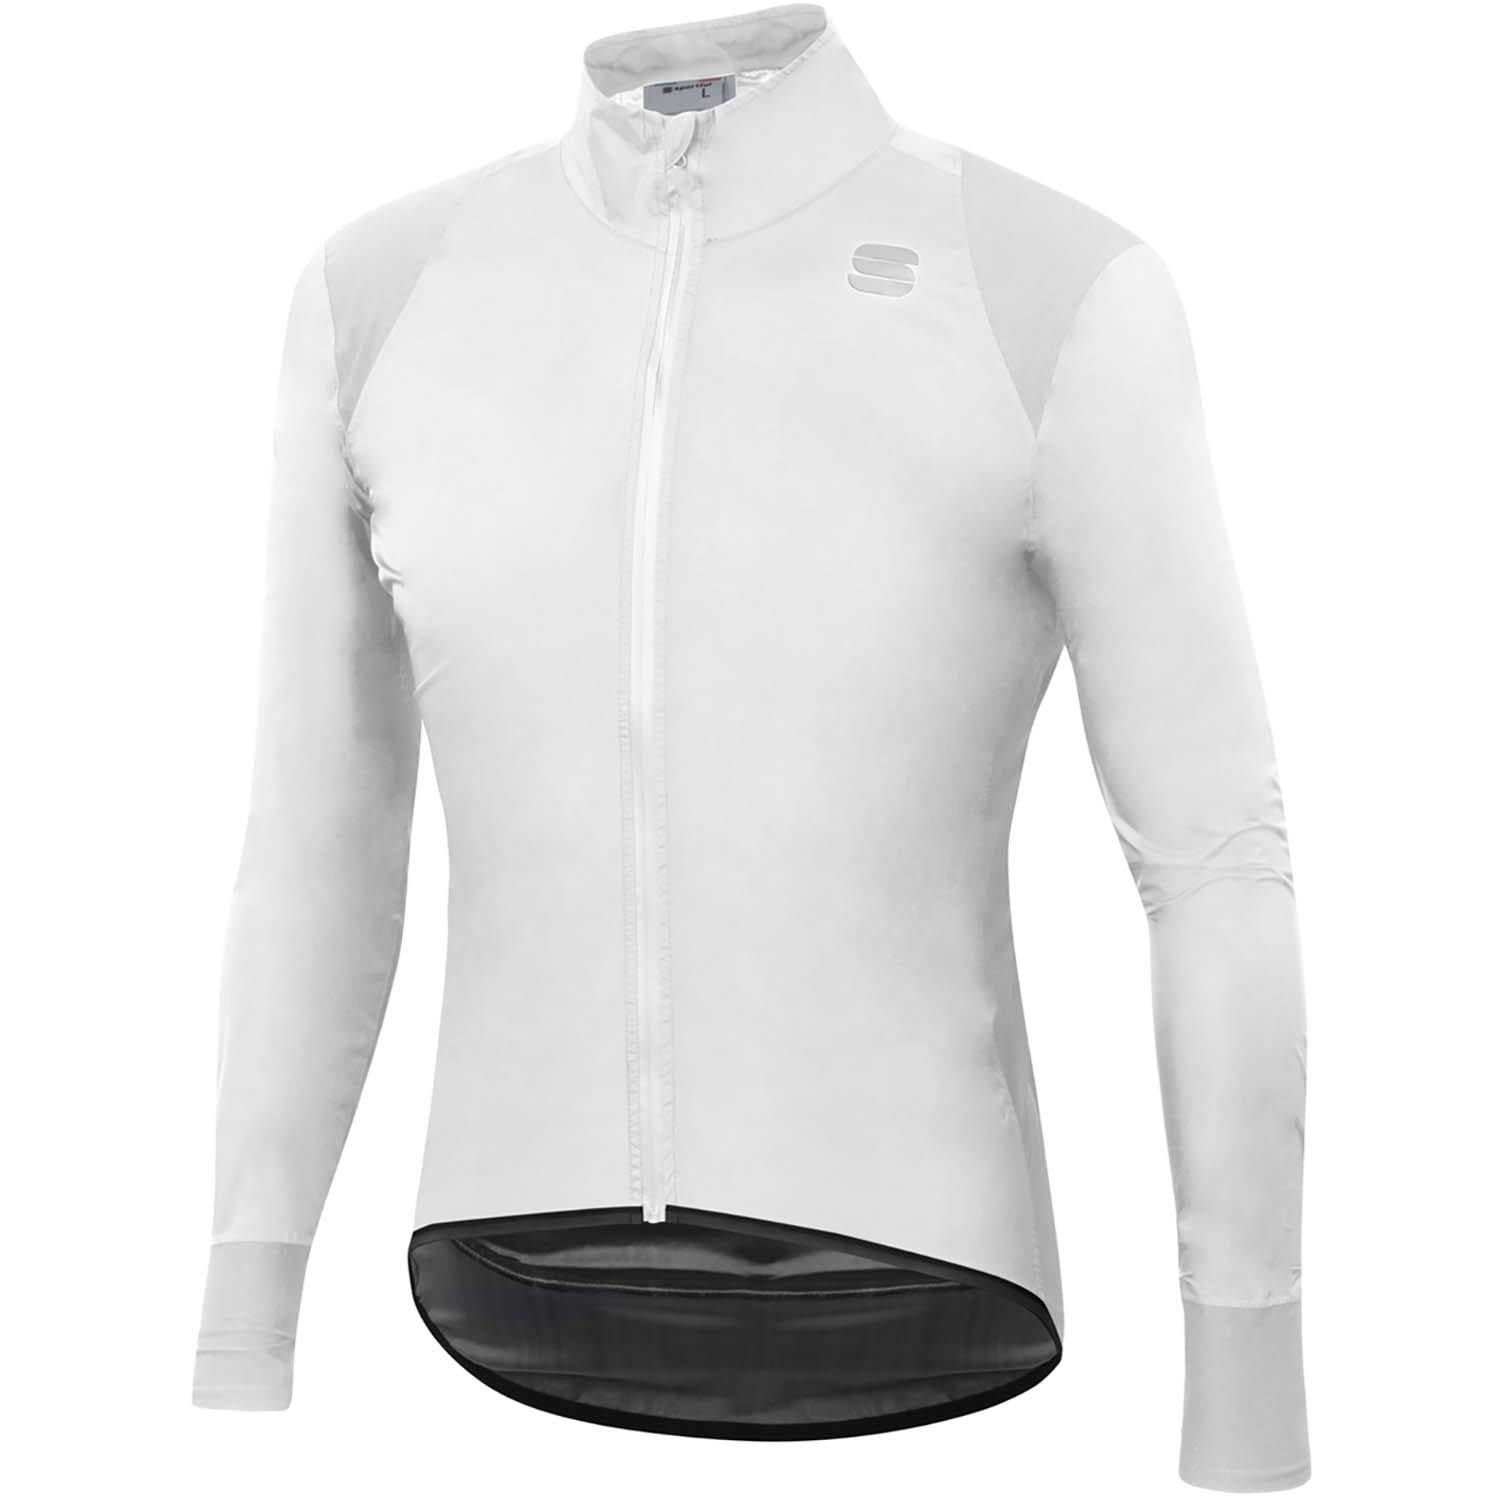 Sportful-Sportful Hot Pack NoRain Jacket-White-S-SF200251012-saddleback-elite-performance-cycling